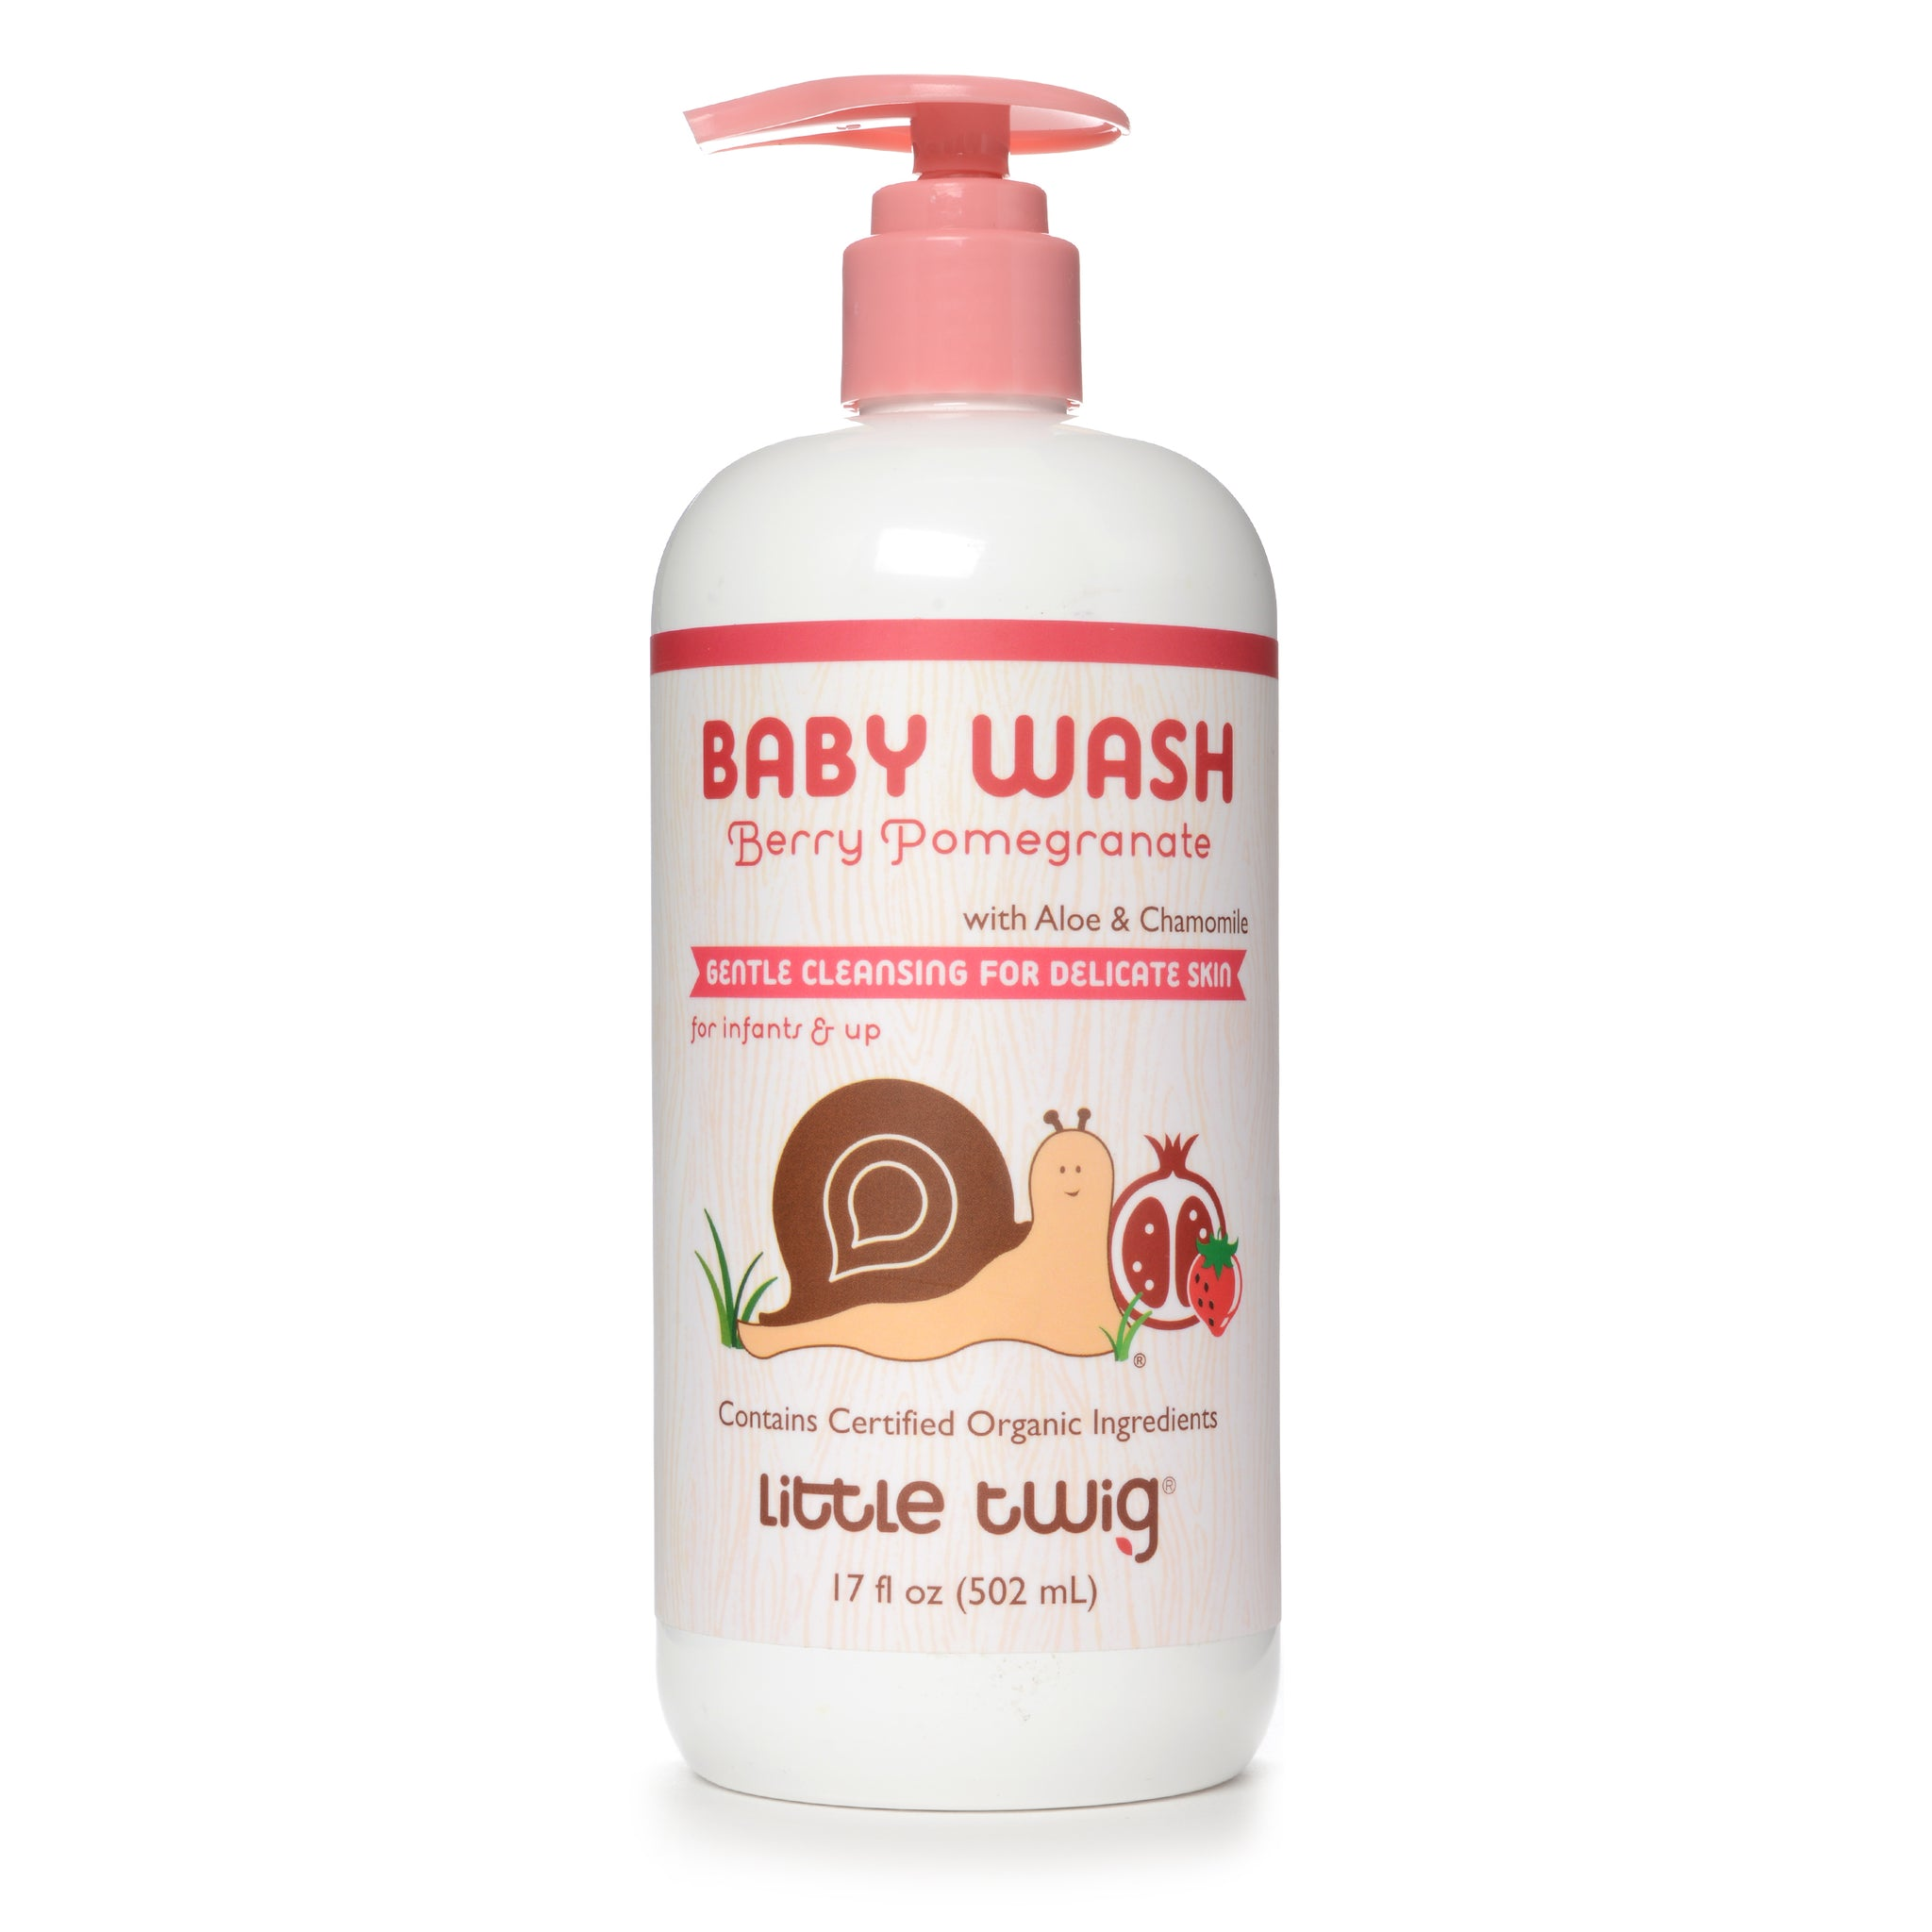 Berry Pomegranate Baby Wash 2-in-1